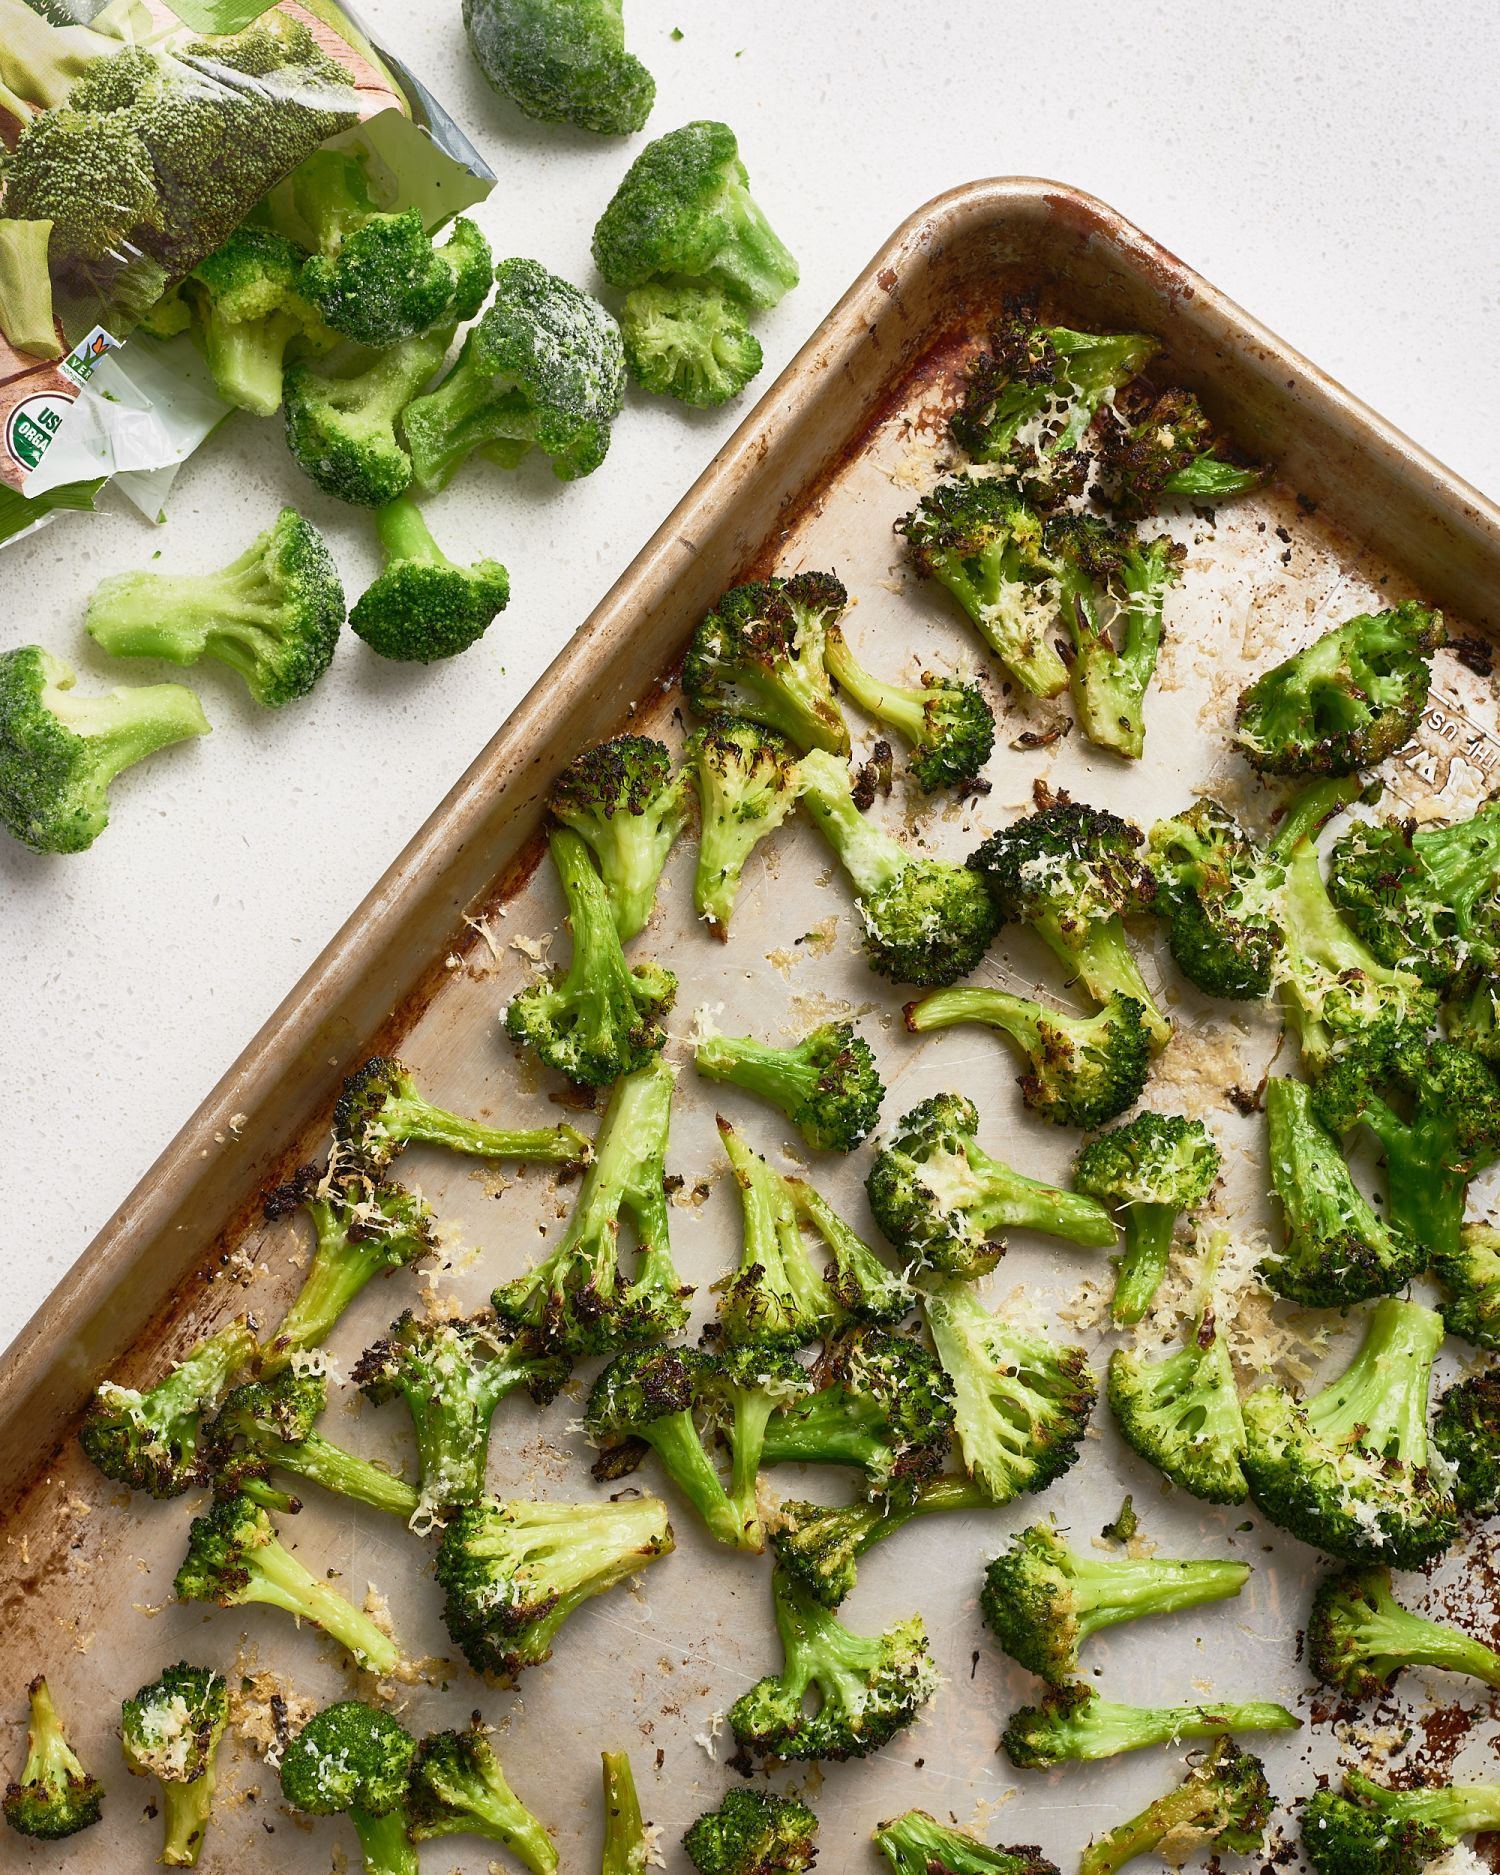 The Absolute Best Ways to Eat Frozen Broccoli